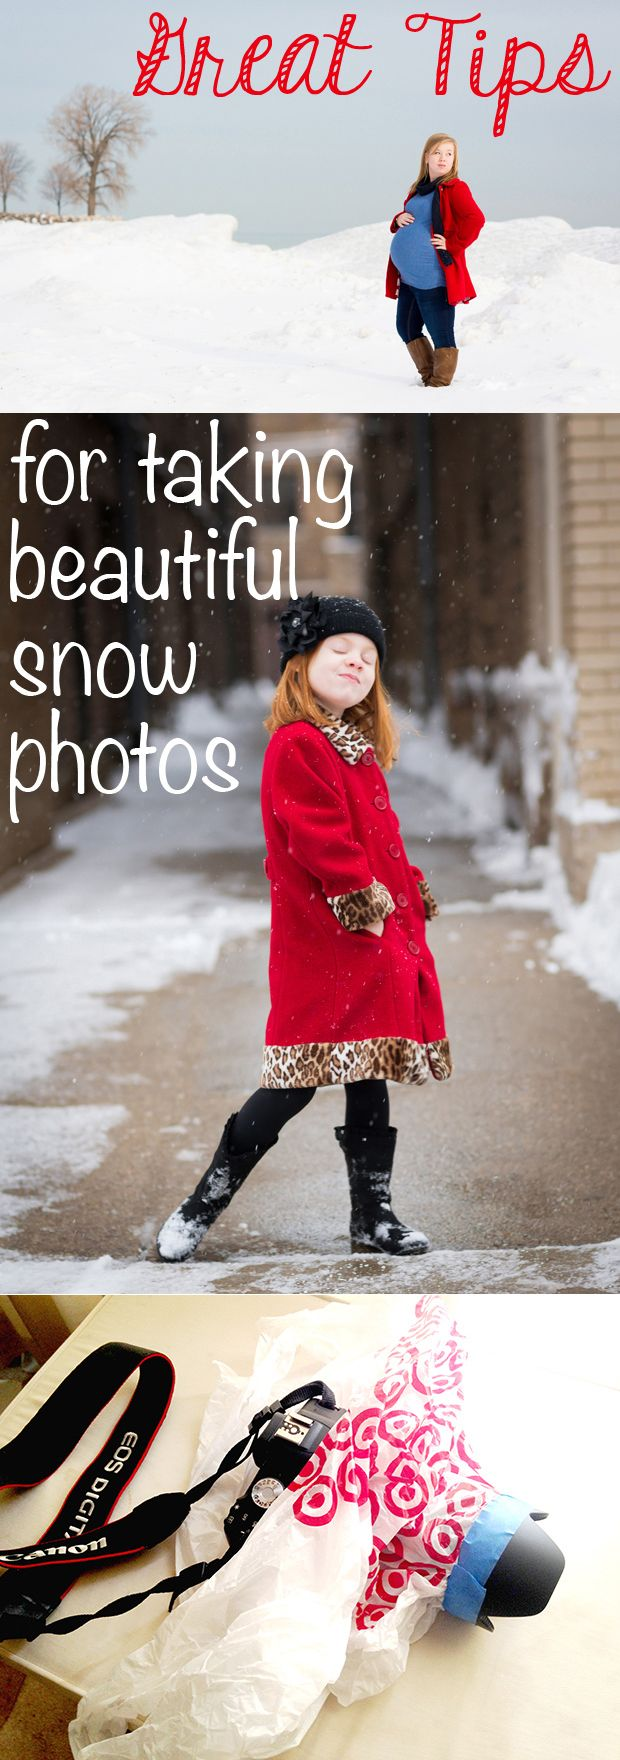 Set your exposure manually so you can make the snow look the way it should - bright and white. More tips for great winter pics: http://www.ehow.com/ehow-tech/blog/tips-for-taking-portraits-in-the-snow/?utm_source=pinterest&utm_medium=fanpage&utm_content=blog